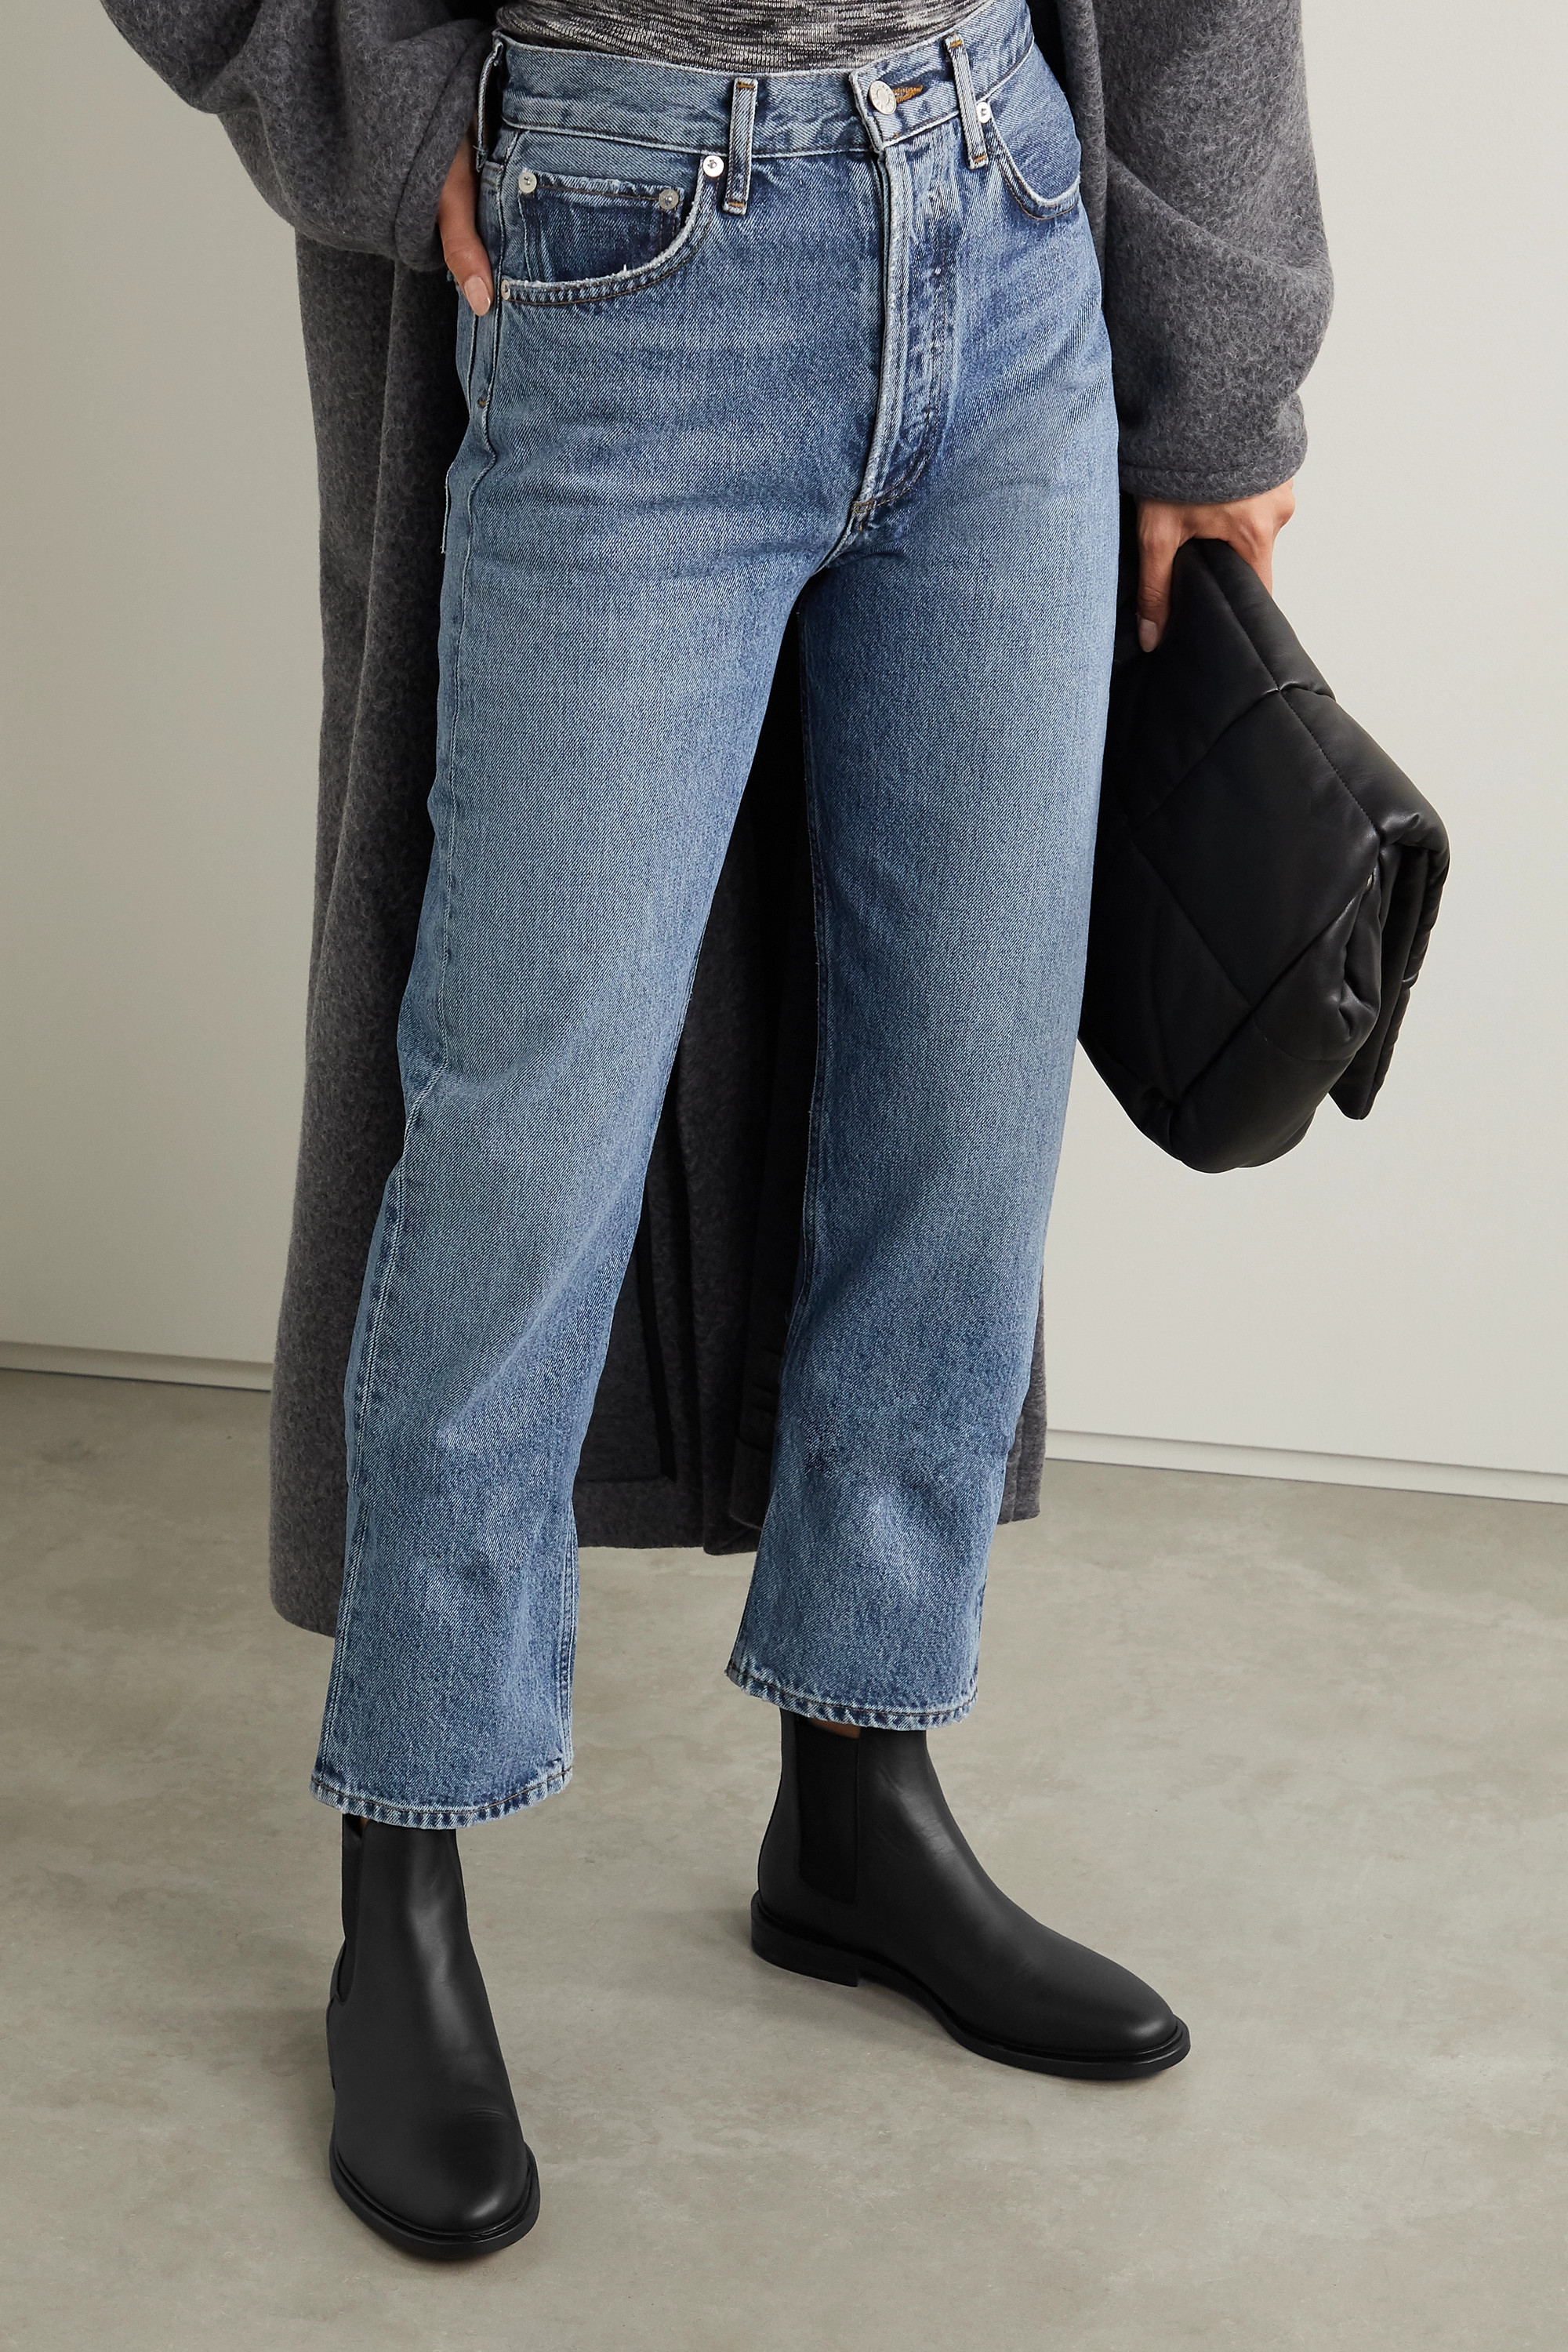 Black Leather Chelsea boots | Common